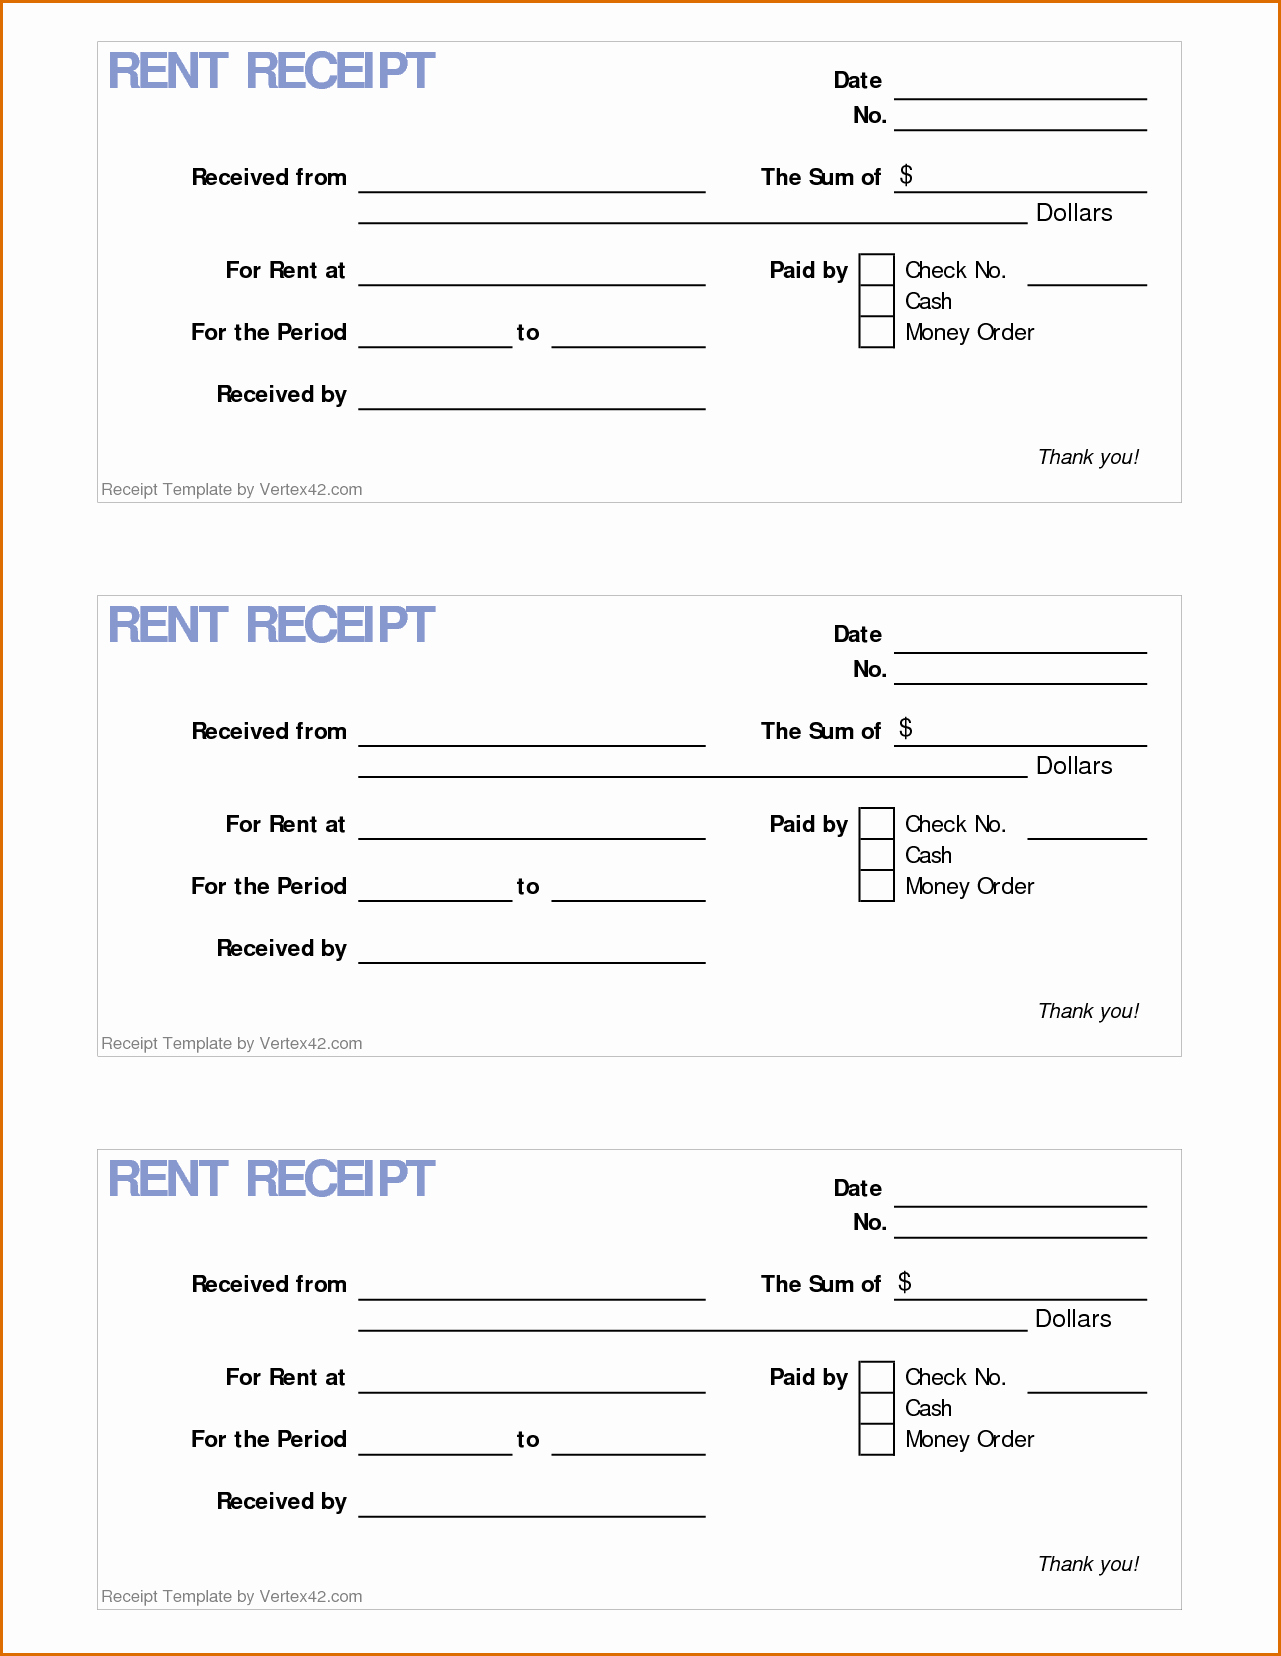 Free Rental Receipt Template Beautiful 4 Printable Rent Receipt